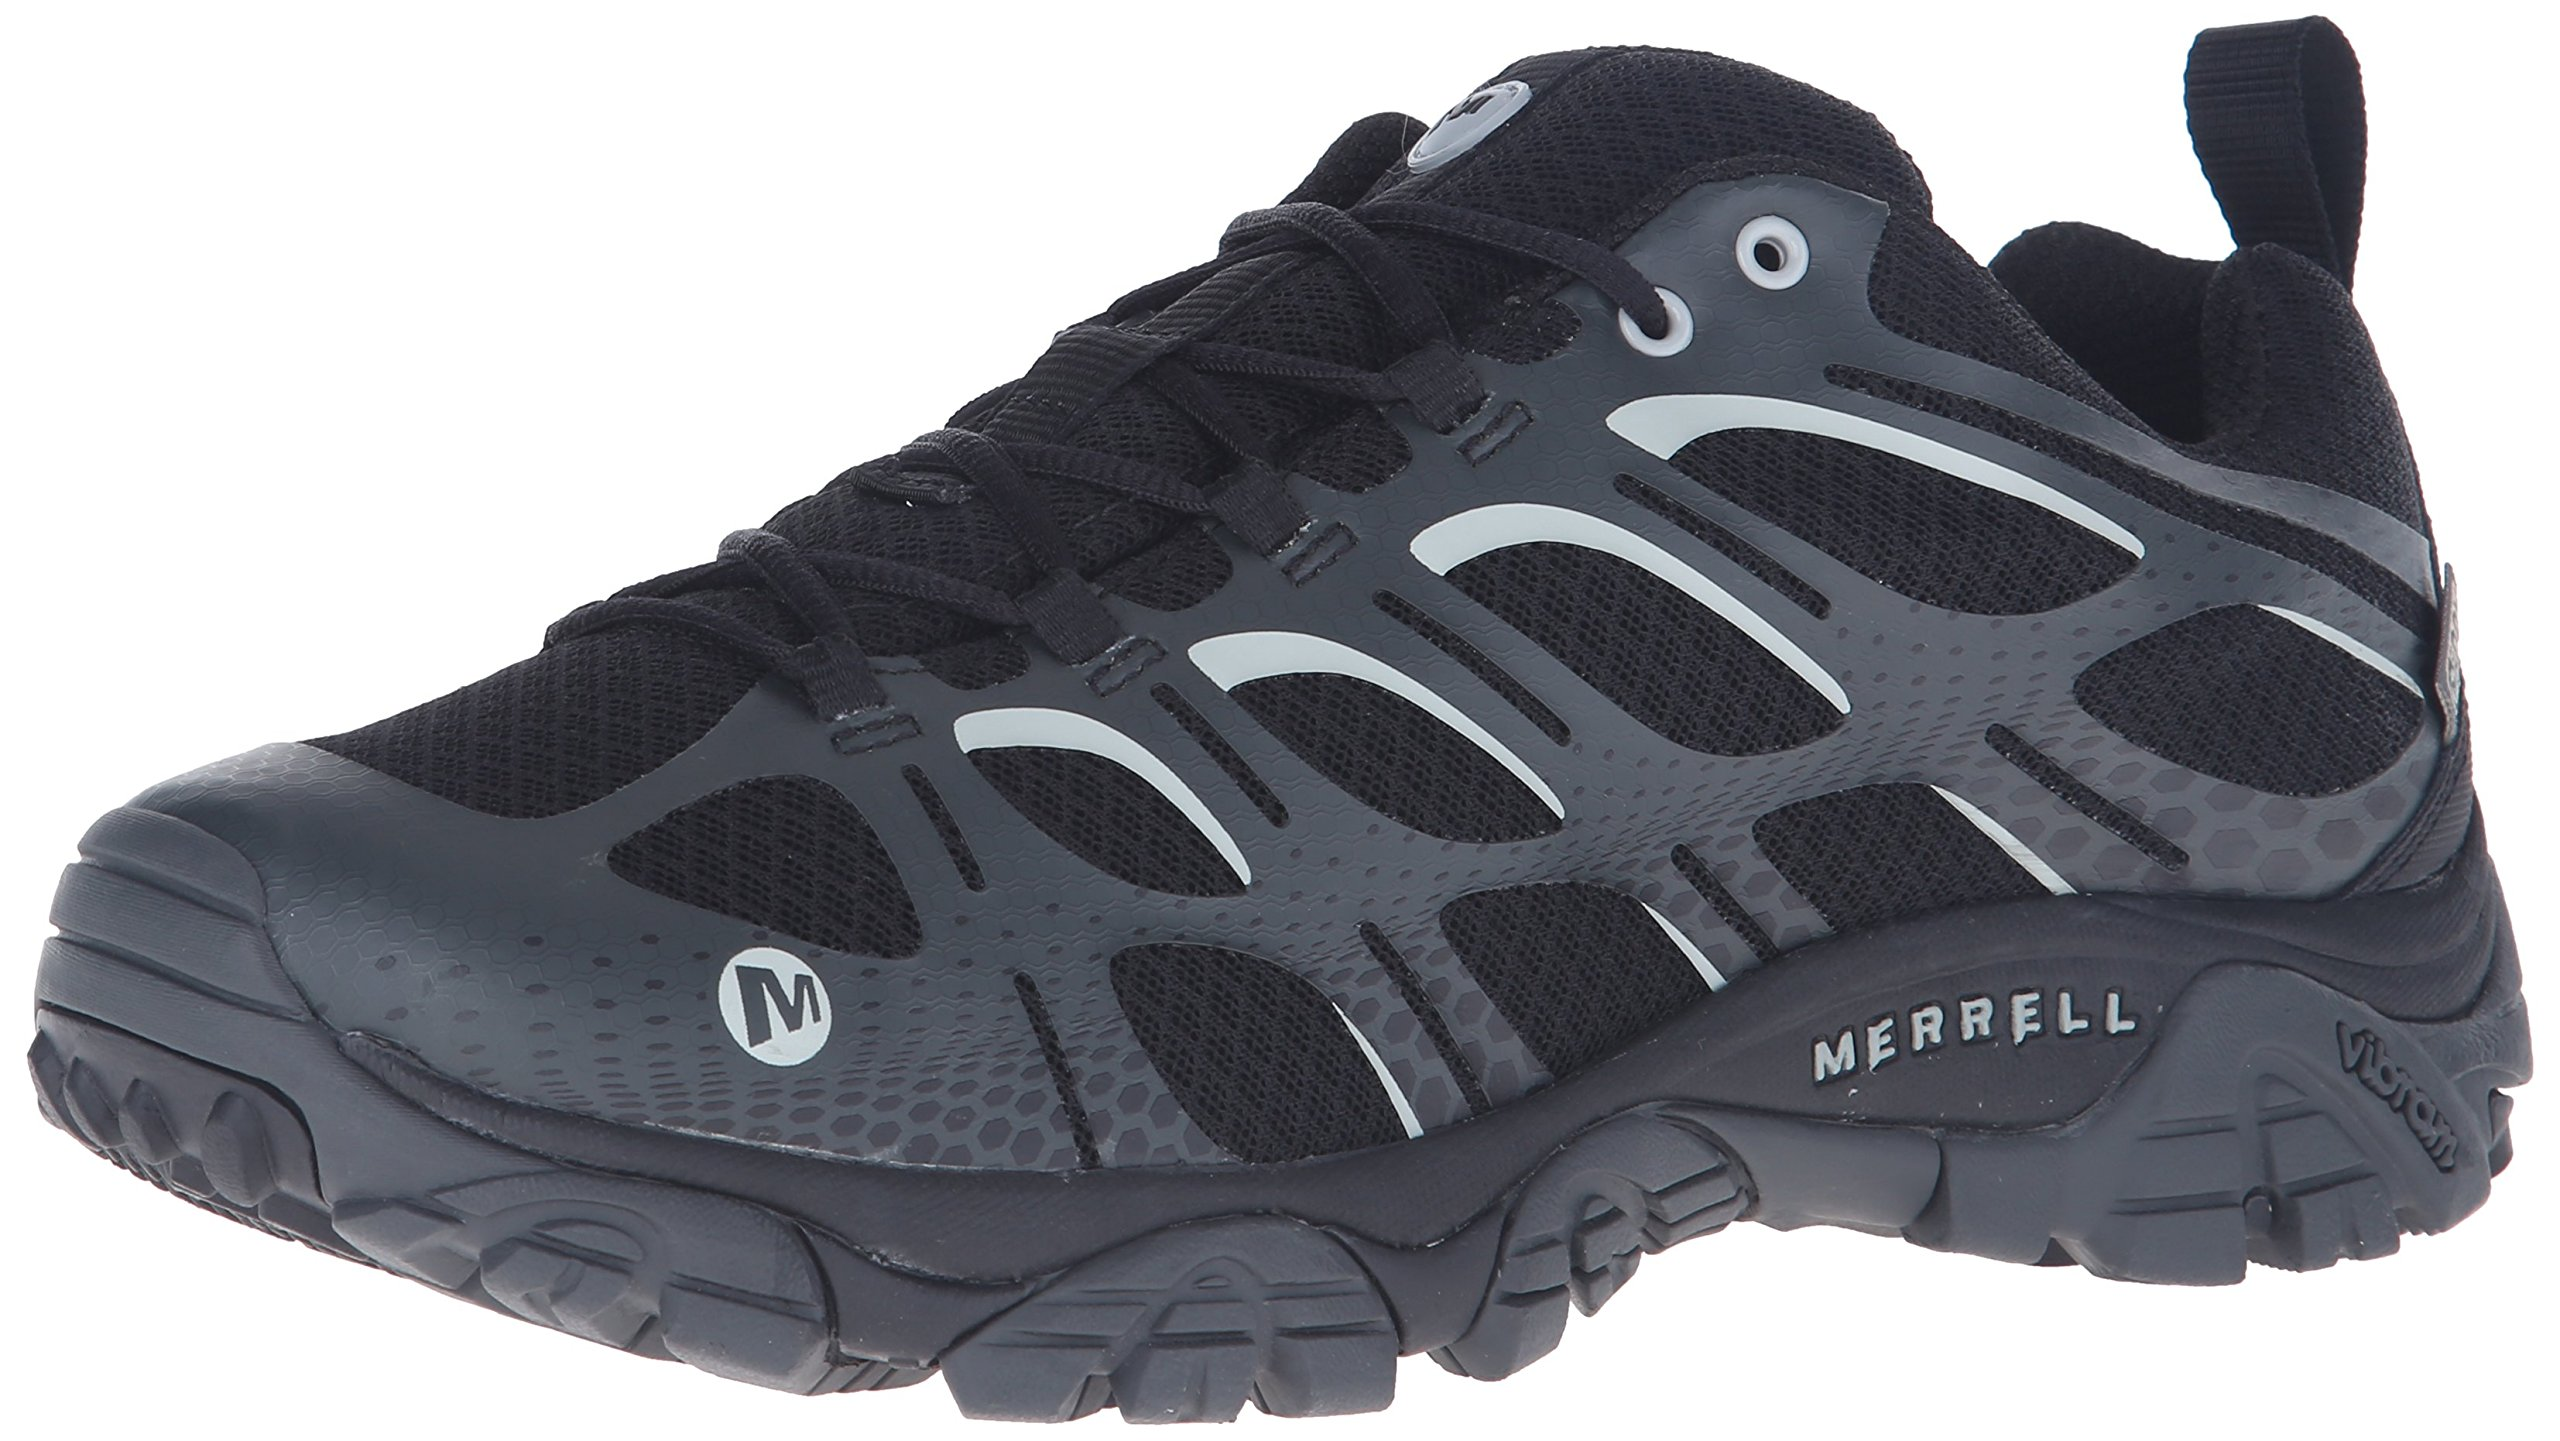 Merrell Men's Moab Edge Waterproof Hiking Shoe, Black, 13 M US